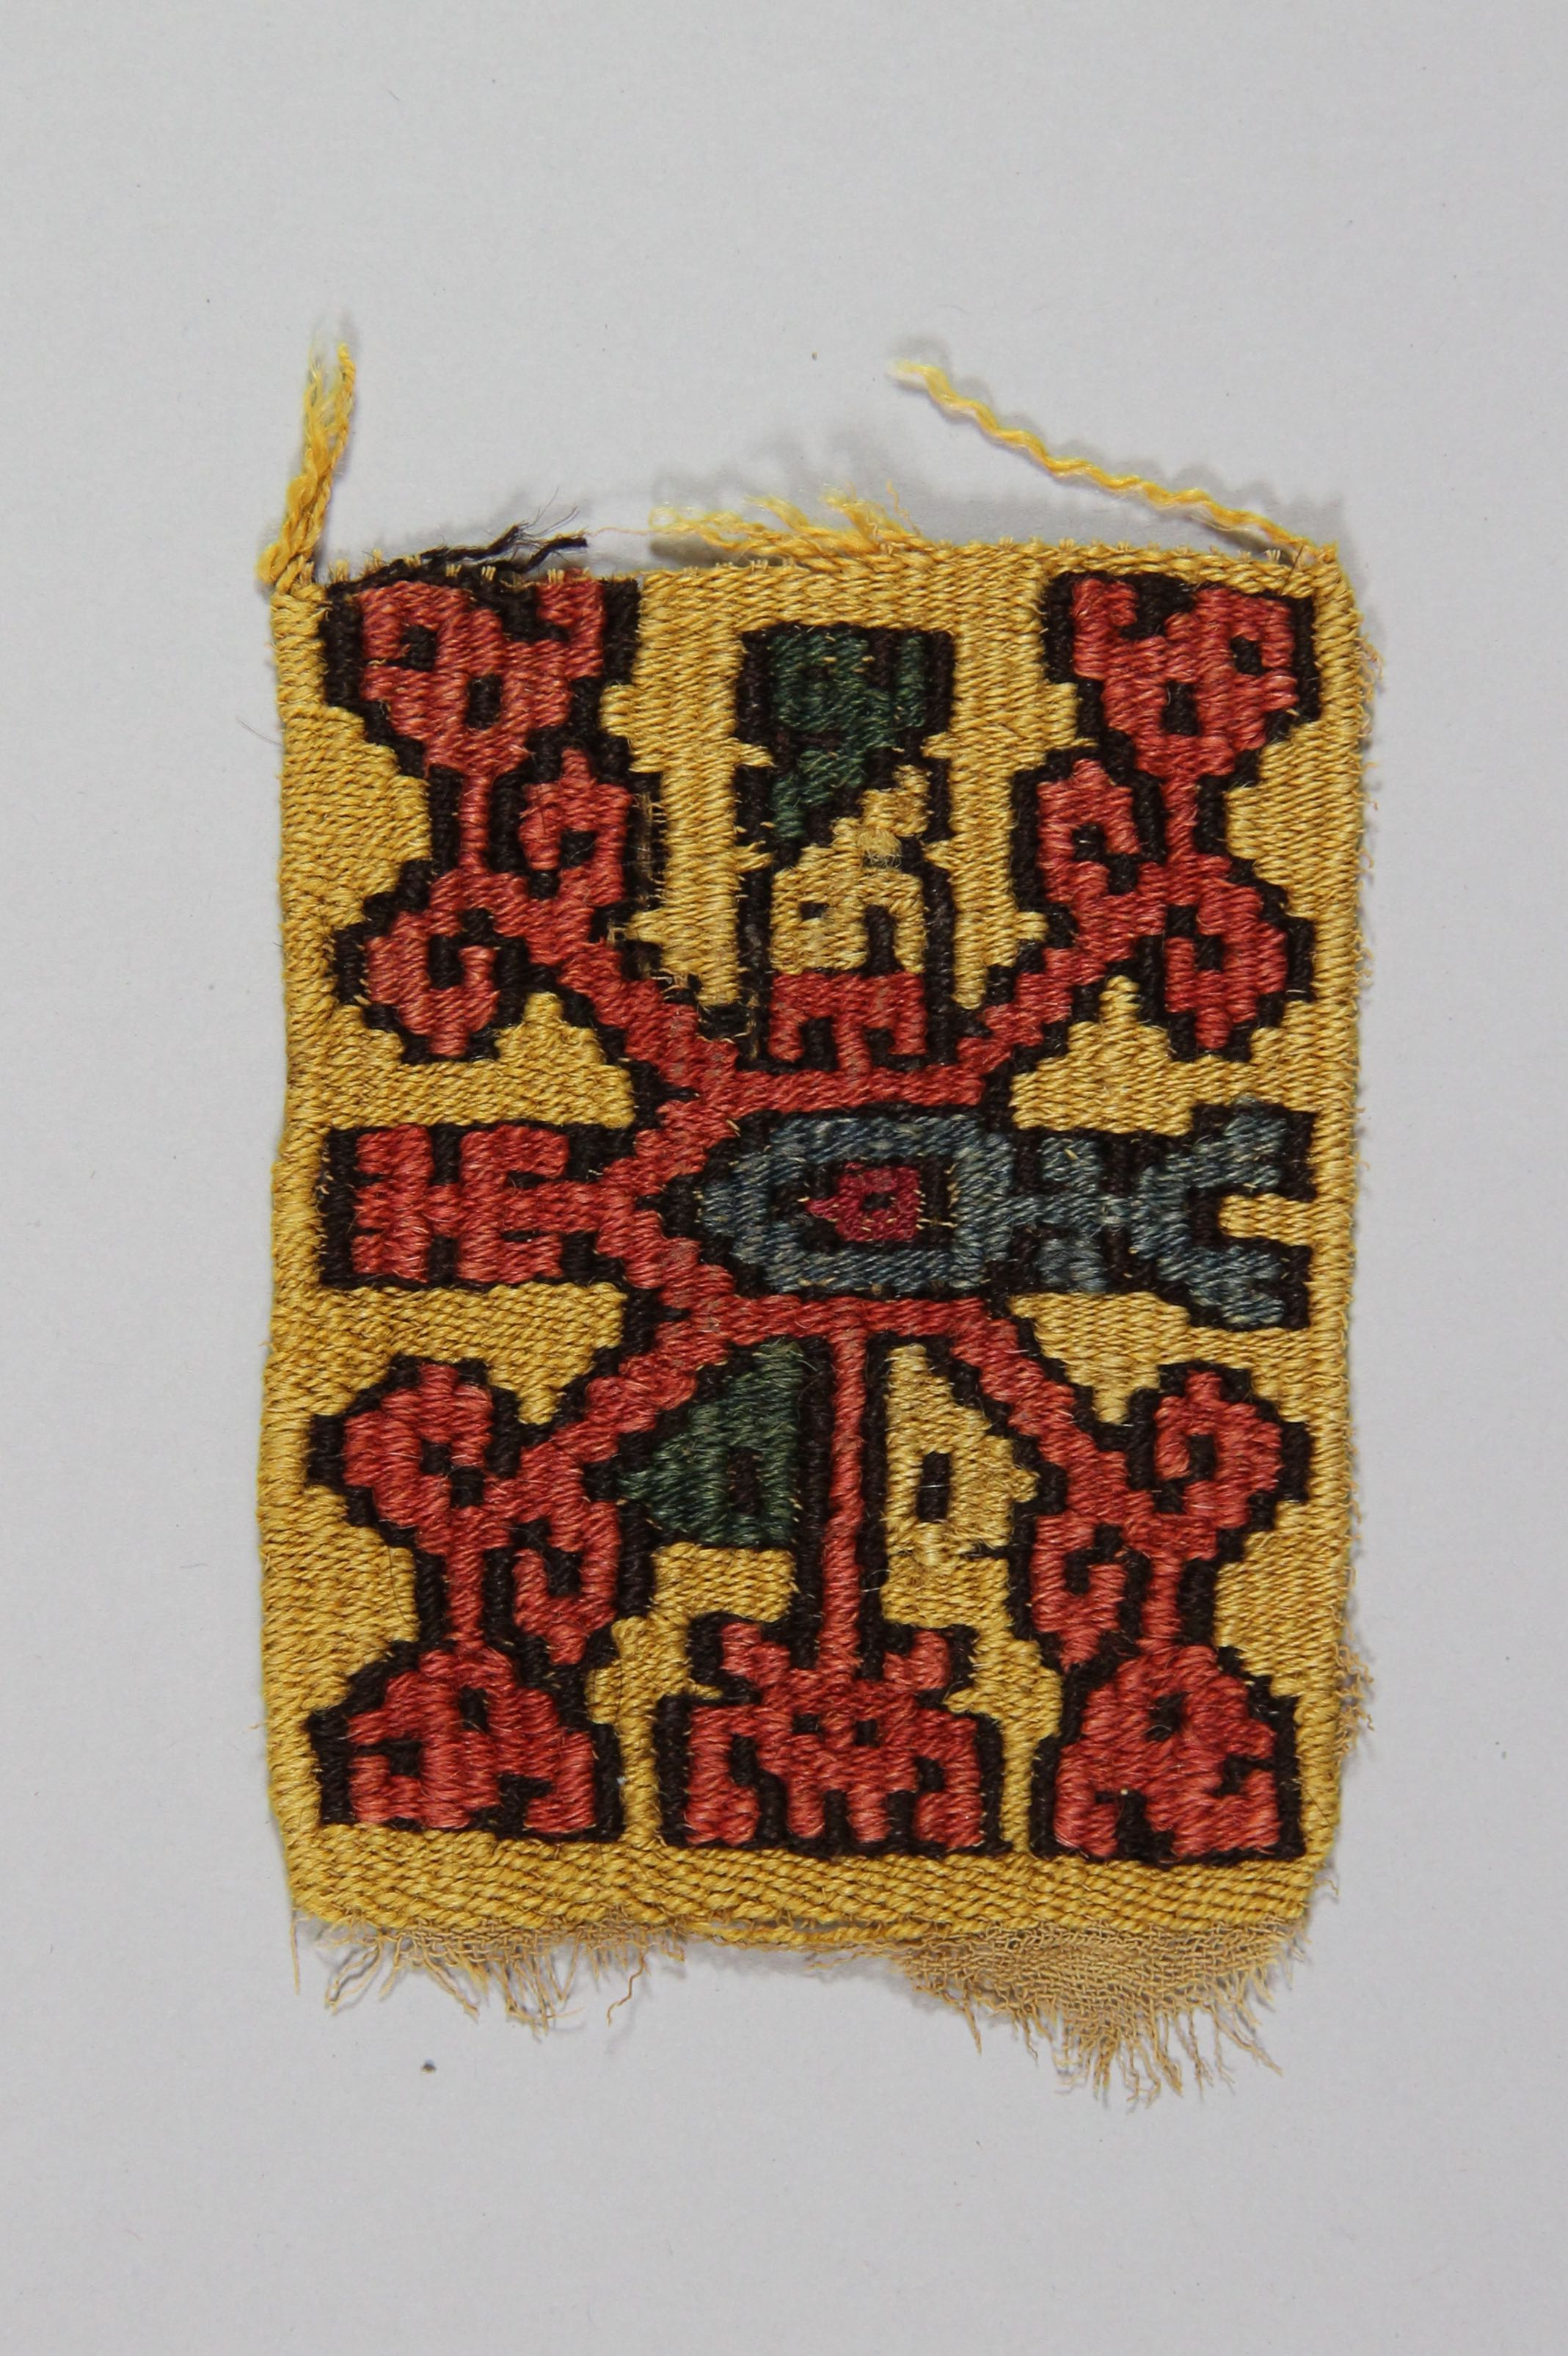 Woven patterned textile (fragment)